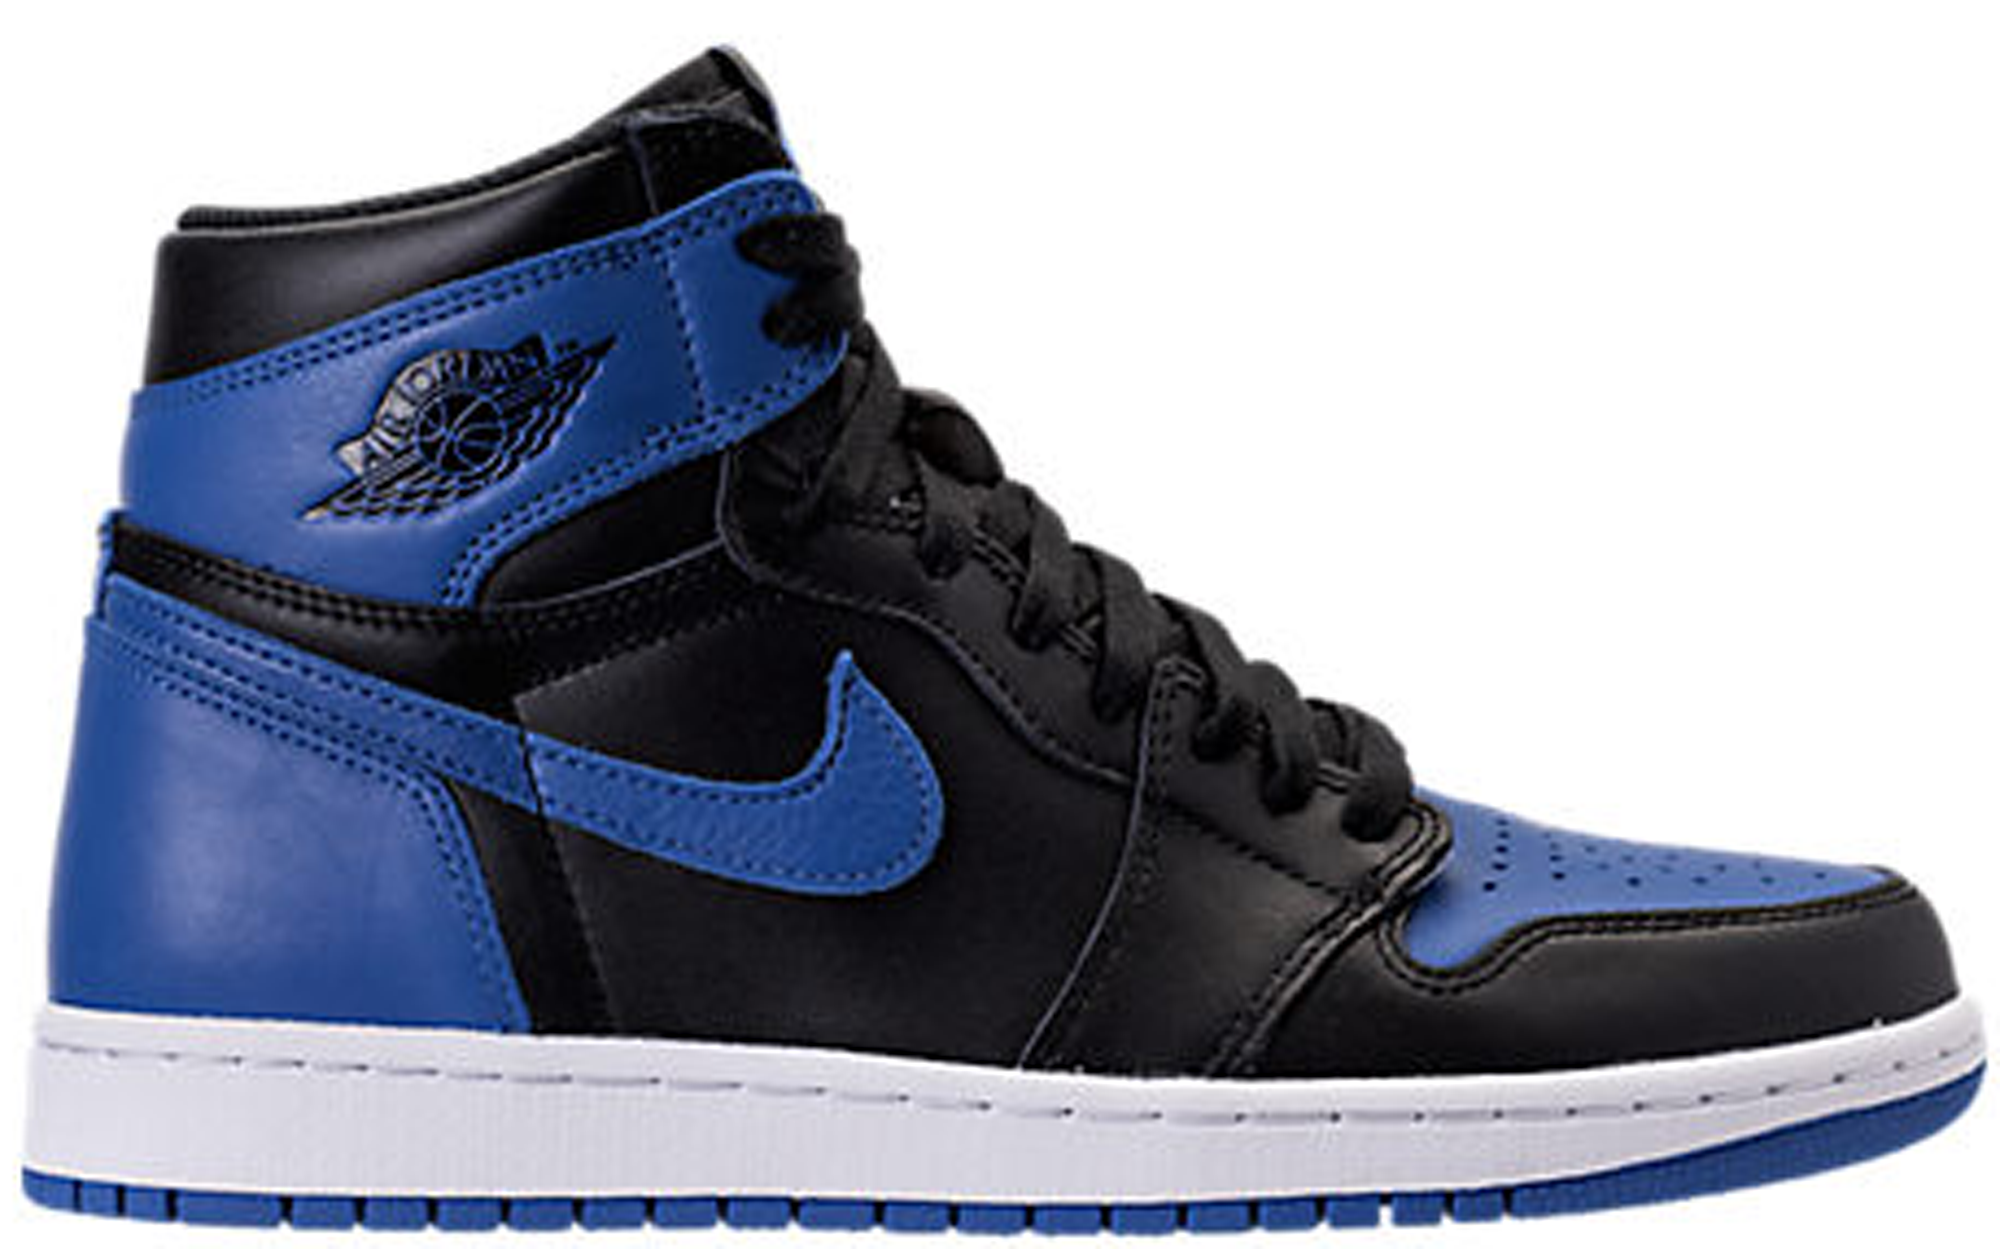 32291c7b9cb5e2 Air Jordan 1 Retro High OG Royal (2017) - StockX News